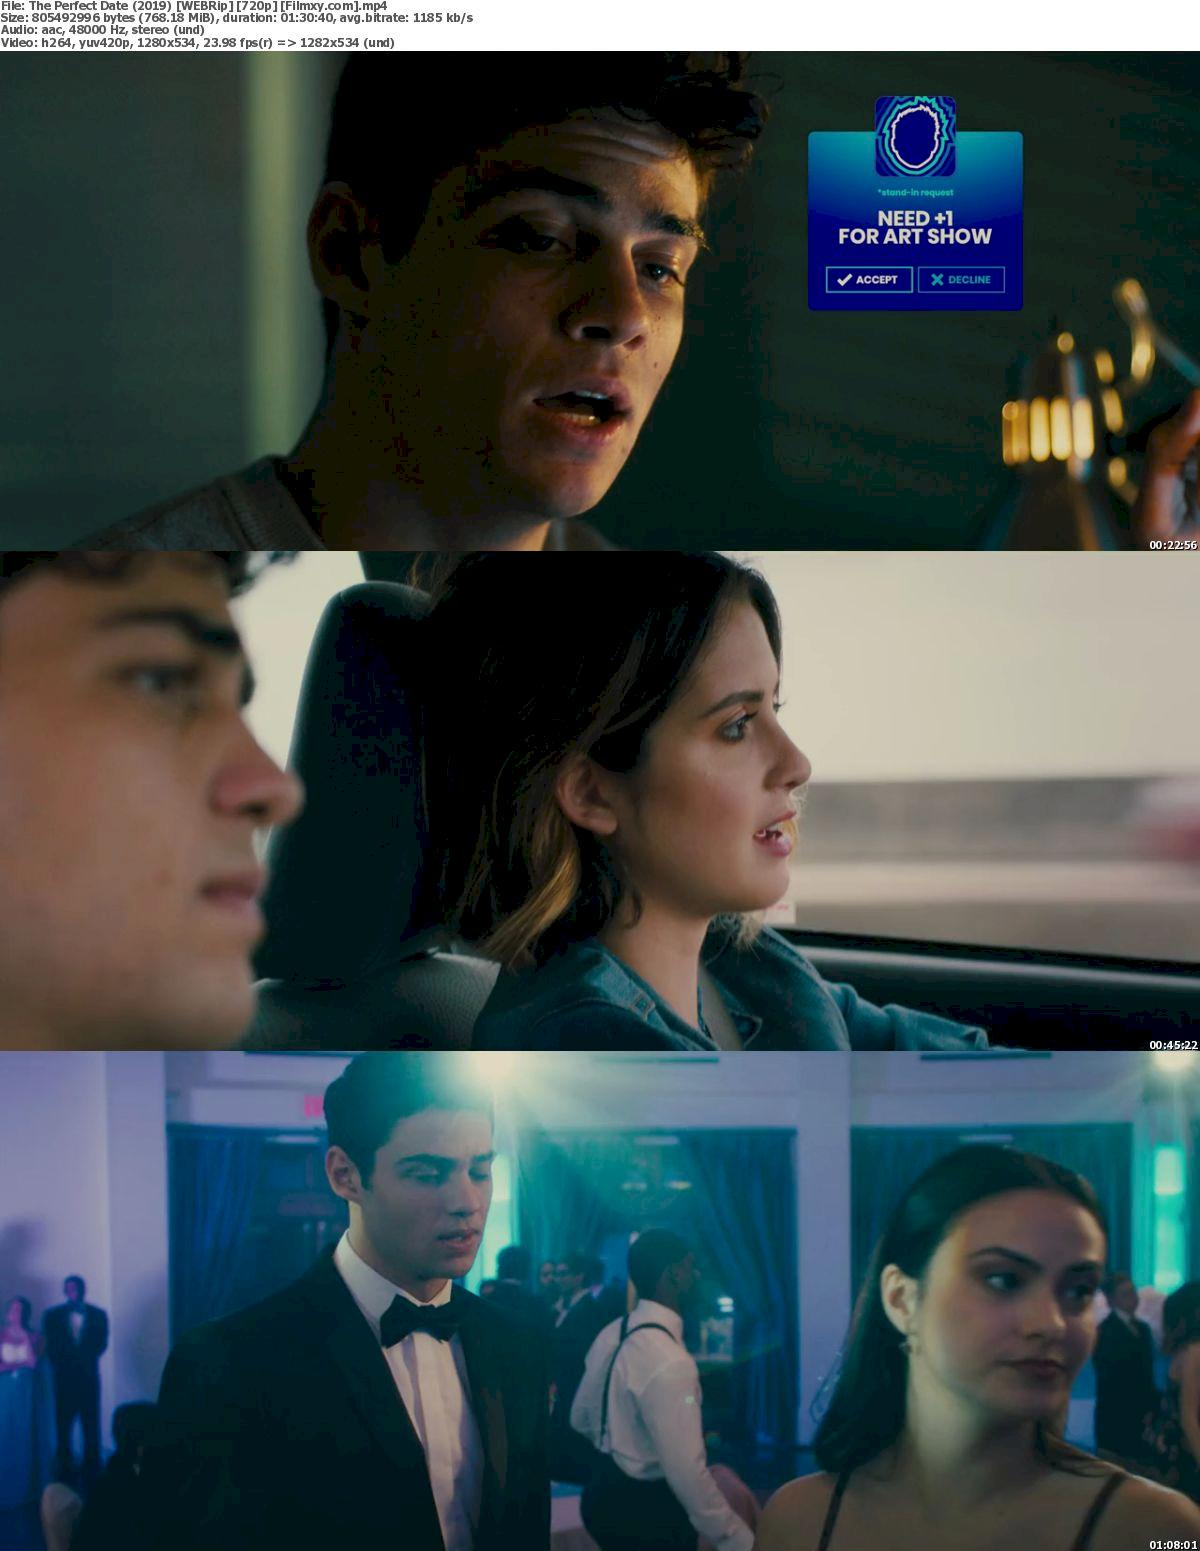 The Perfect Date (2019) [720p & 1080p] WEB-Rip Free Movie Watch Online & Download 720p Screenshot